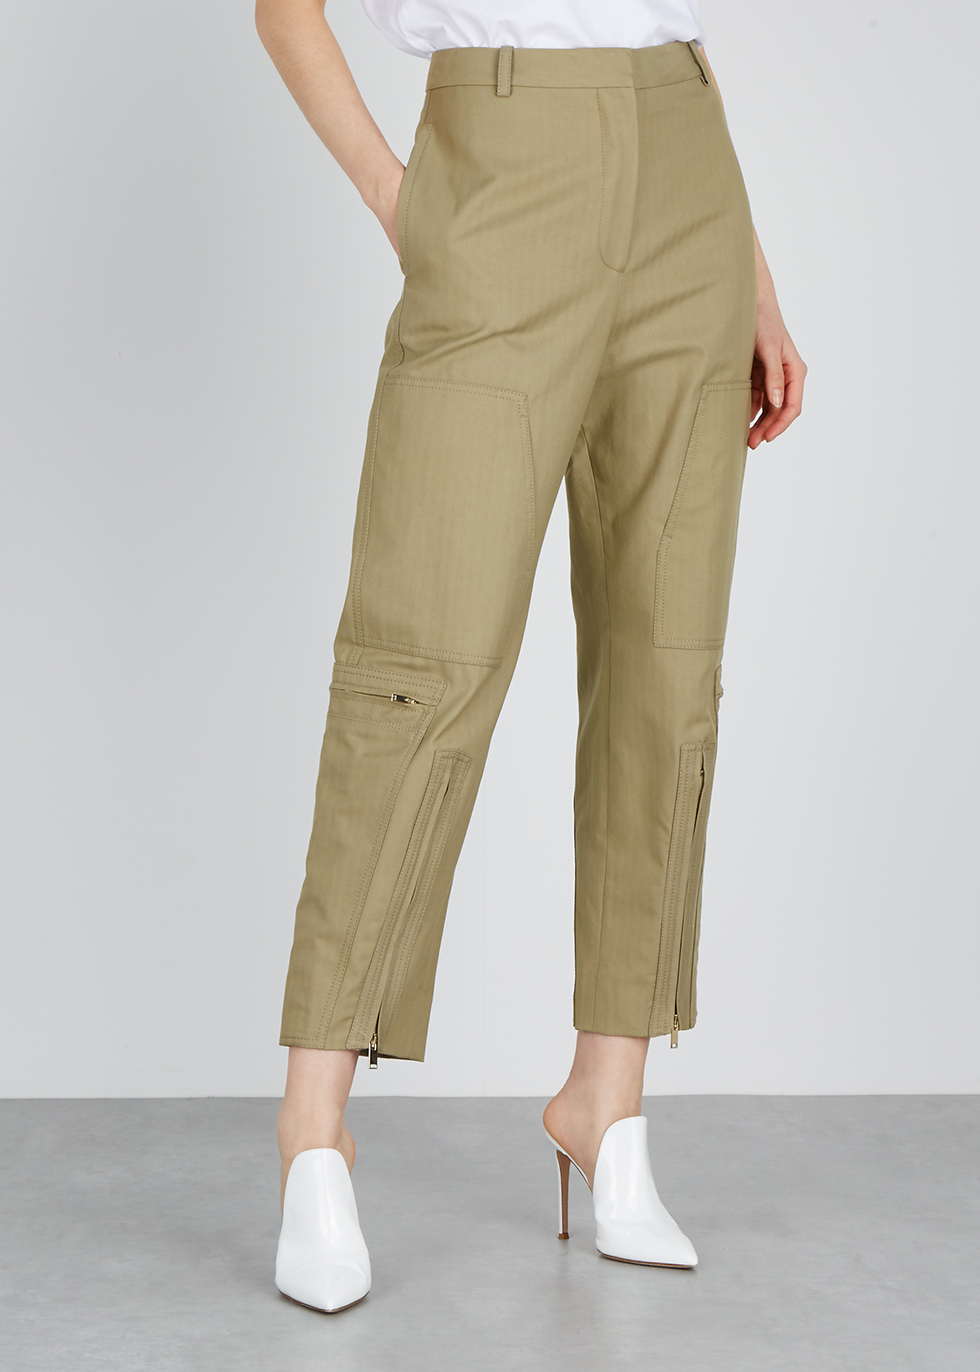 Taupe herringbone cotton-blend trousers - Stella McCartney